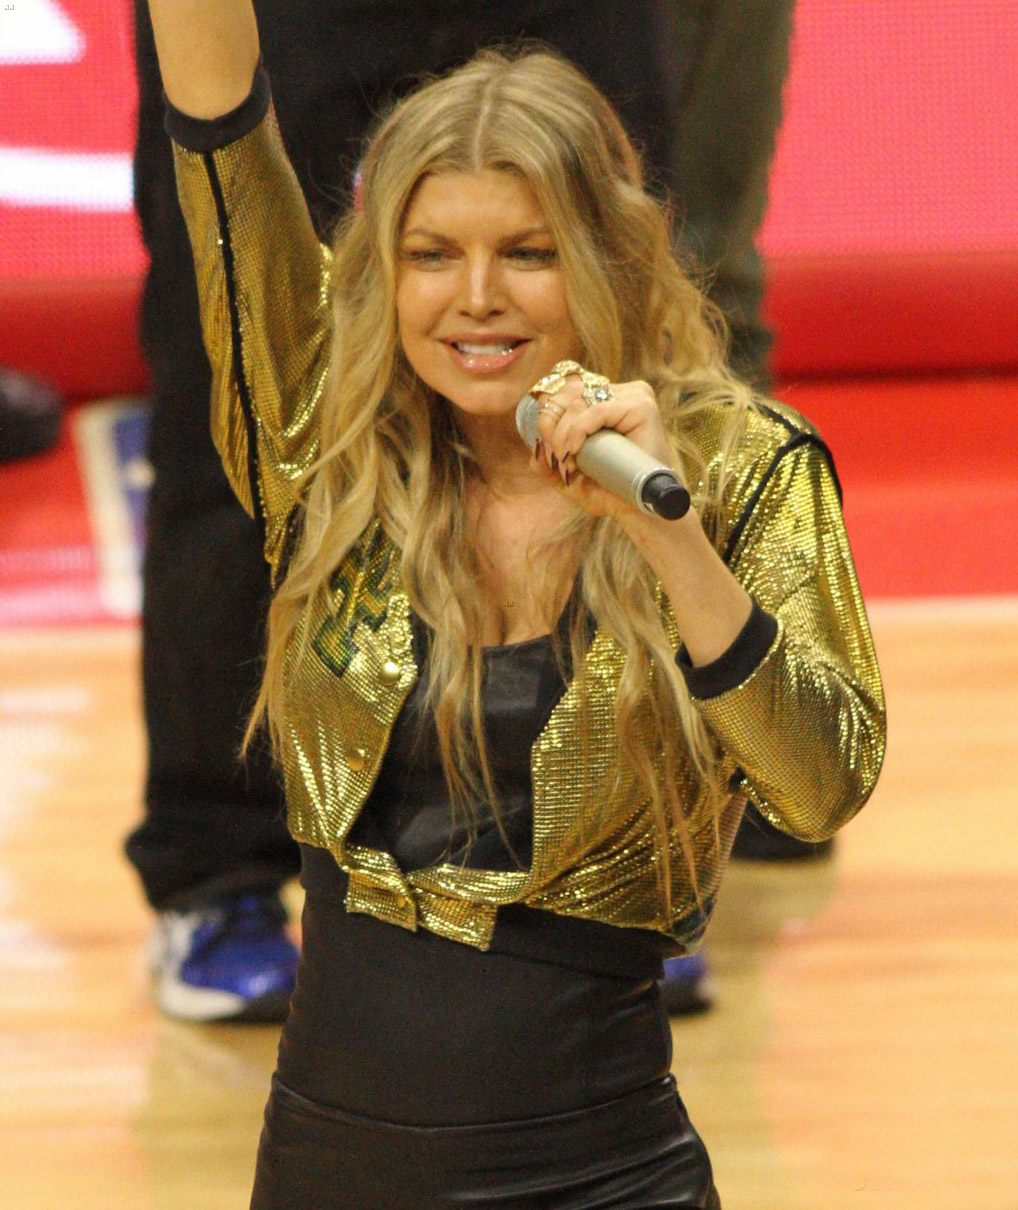 Fergie performs at the Los Angeles Lakers game at Staples Center